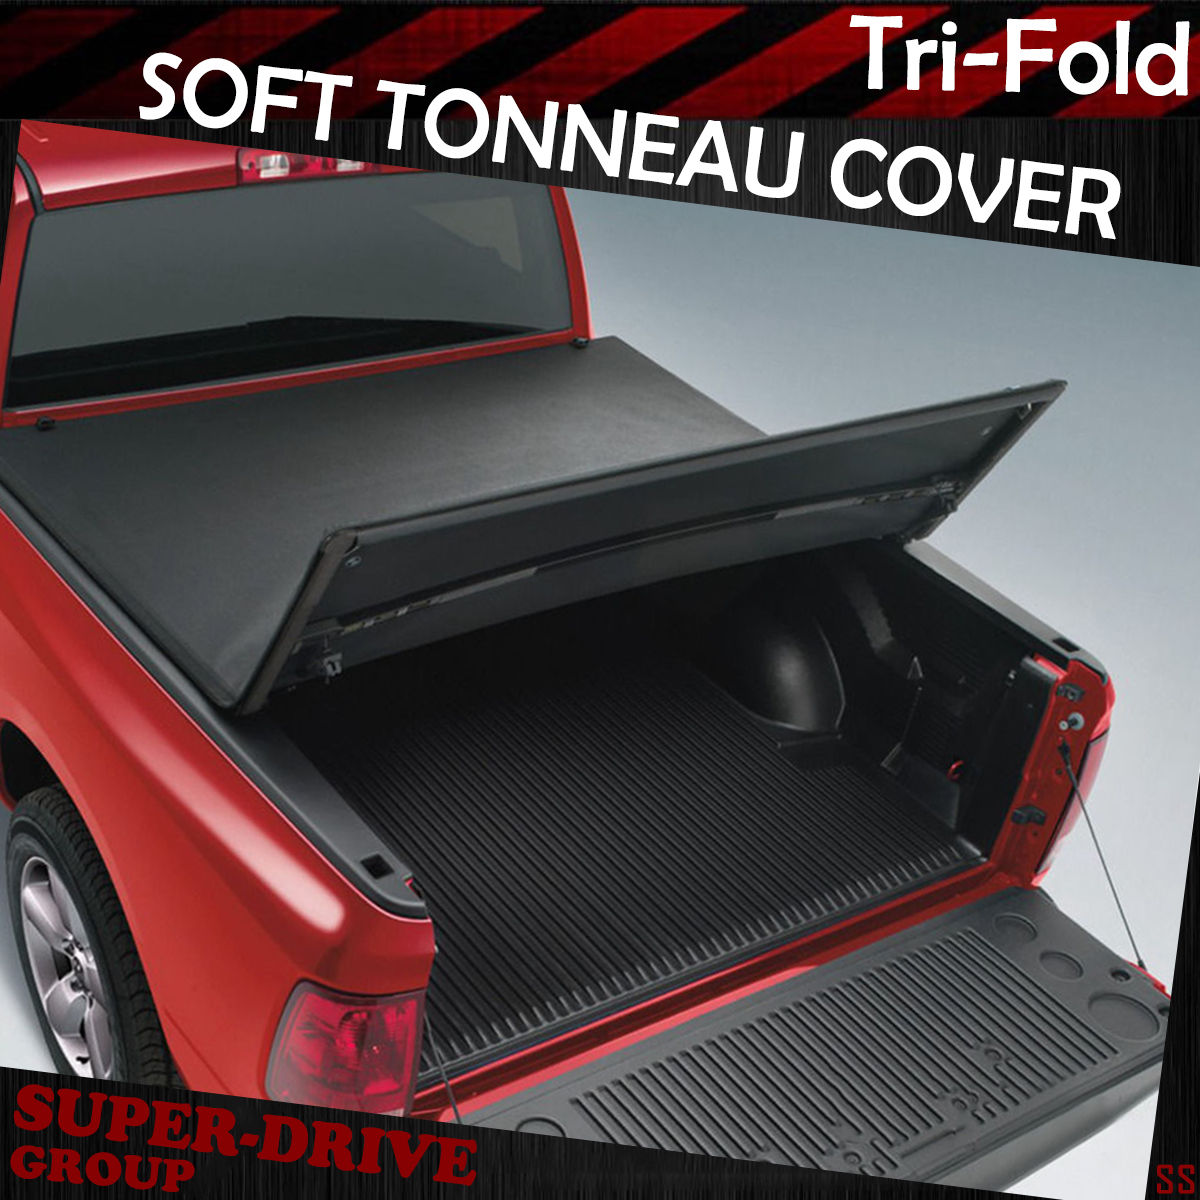 Lock Tri Fold Soft Tonneau Cover For 2007 2019 Toyota Tundra 5 5 Ft Bed Covers Ebay